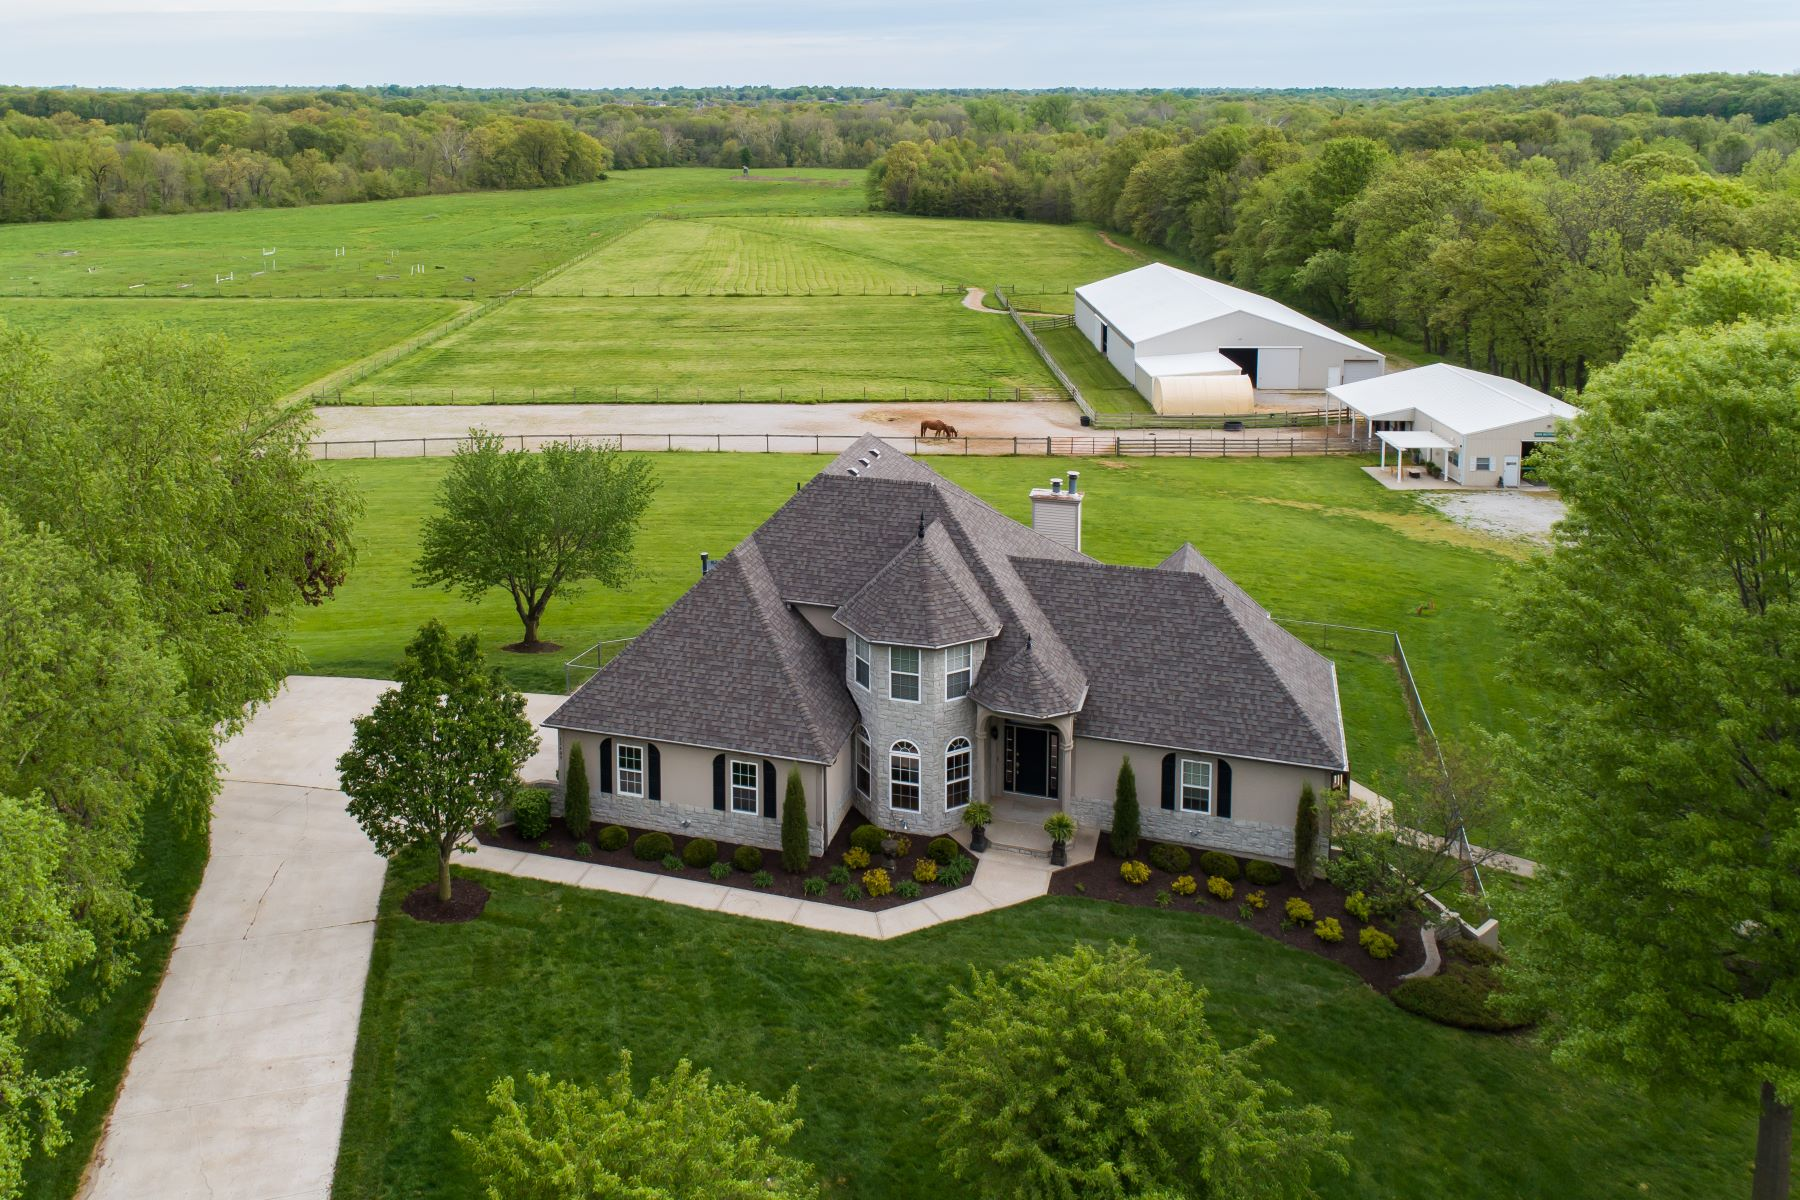 Single Family Homes for Sale at Amazing 7+ Acre Horse Haven 12409 Carter Lane Kearney, Missouri 64060 United States